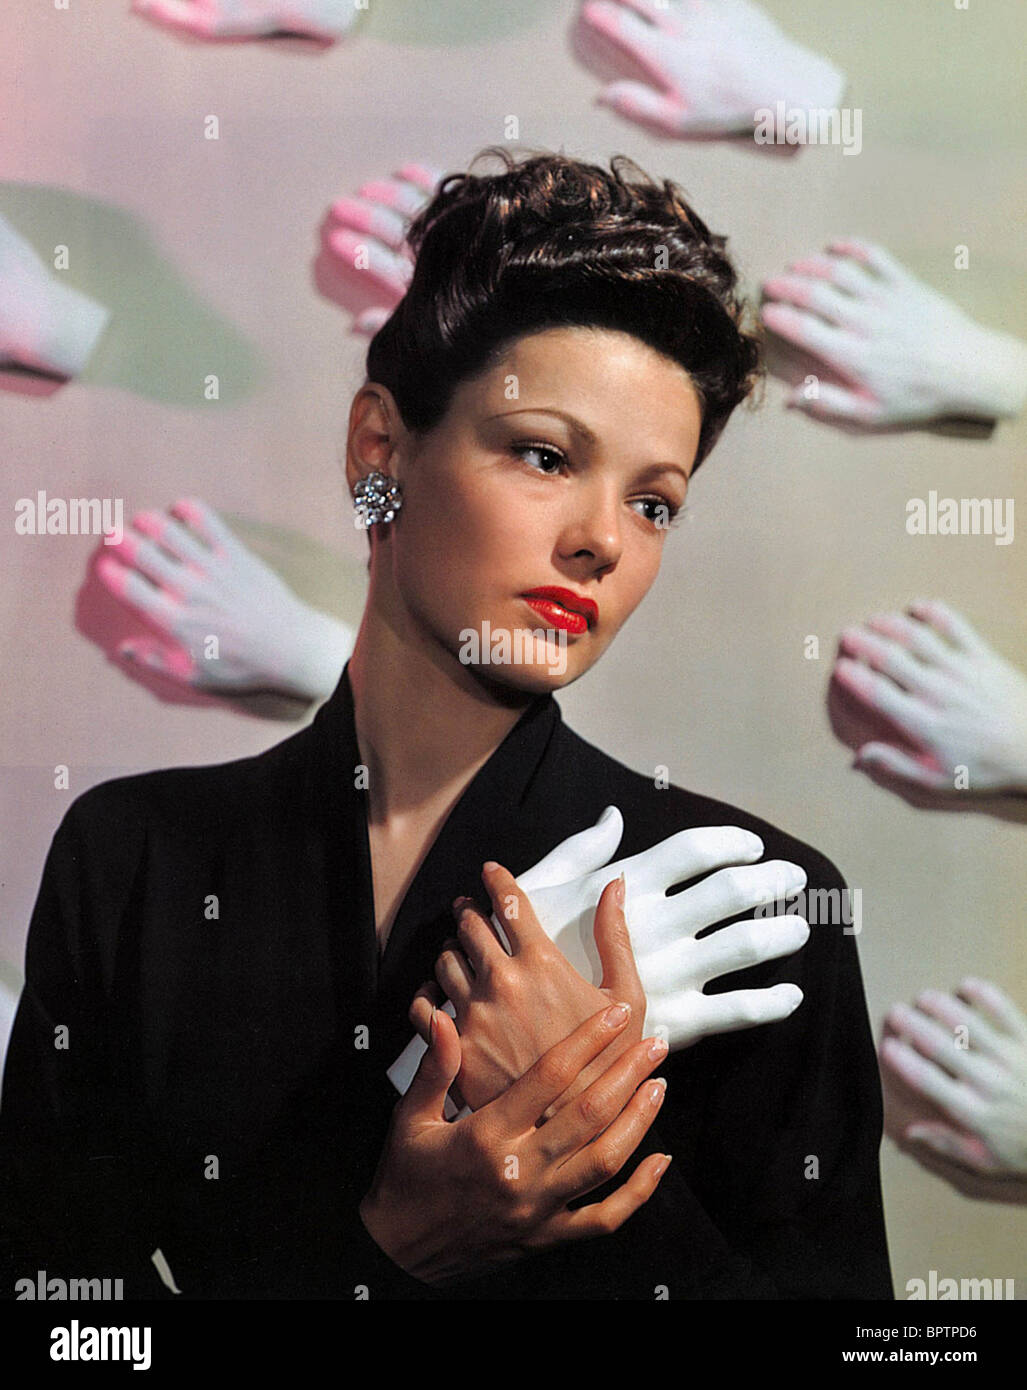 GENE TIERNEY ACTRESS (1943) - Stock Image